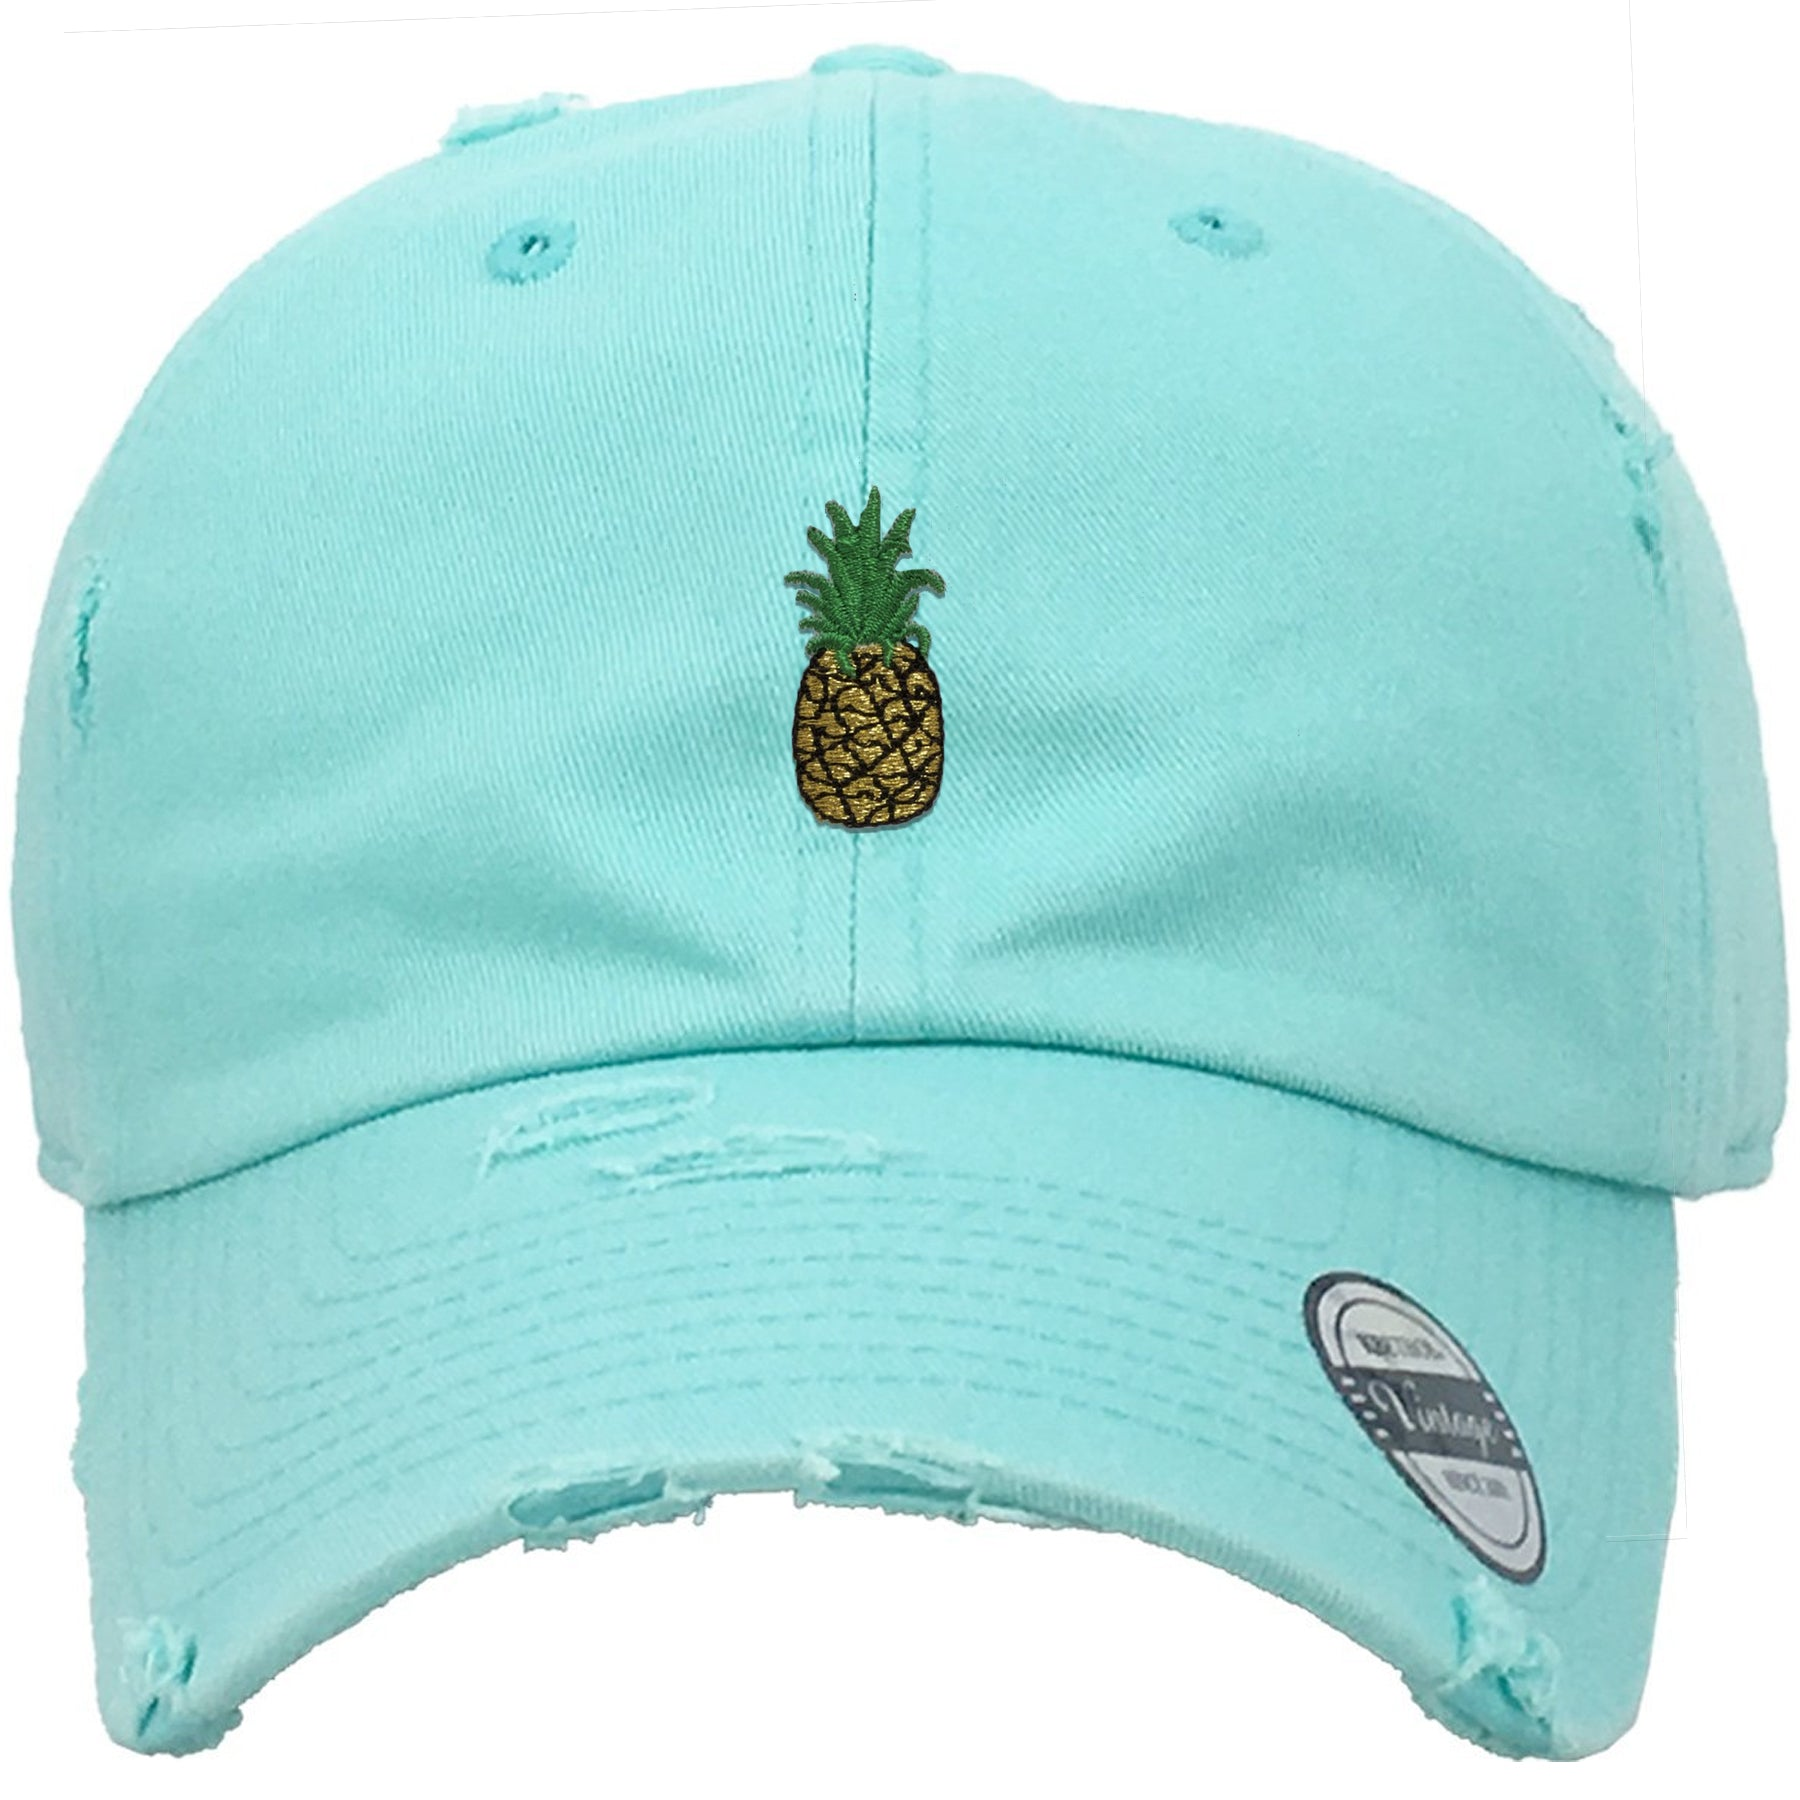 Pineapple Mint Adjustable Distressed Dad Hat – Cap Swag bd781e167b1